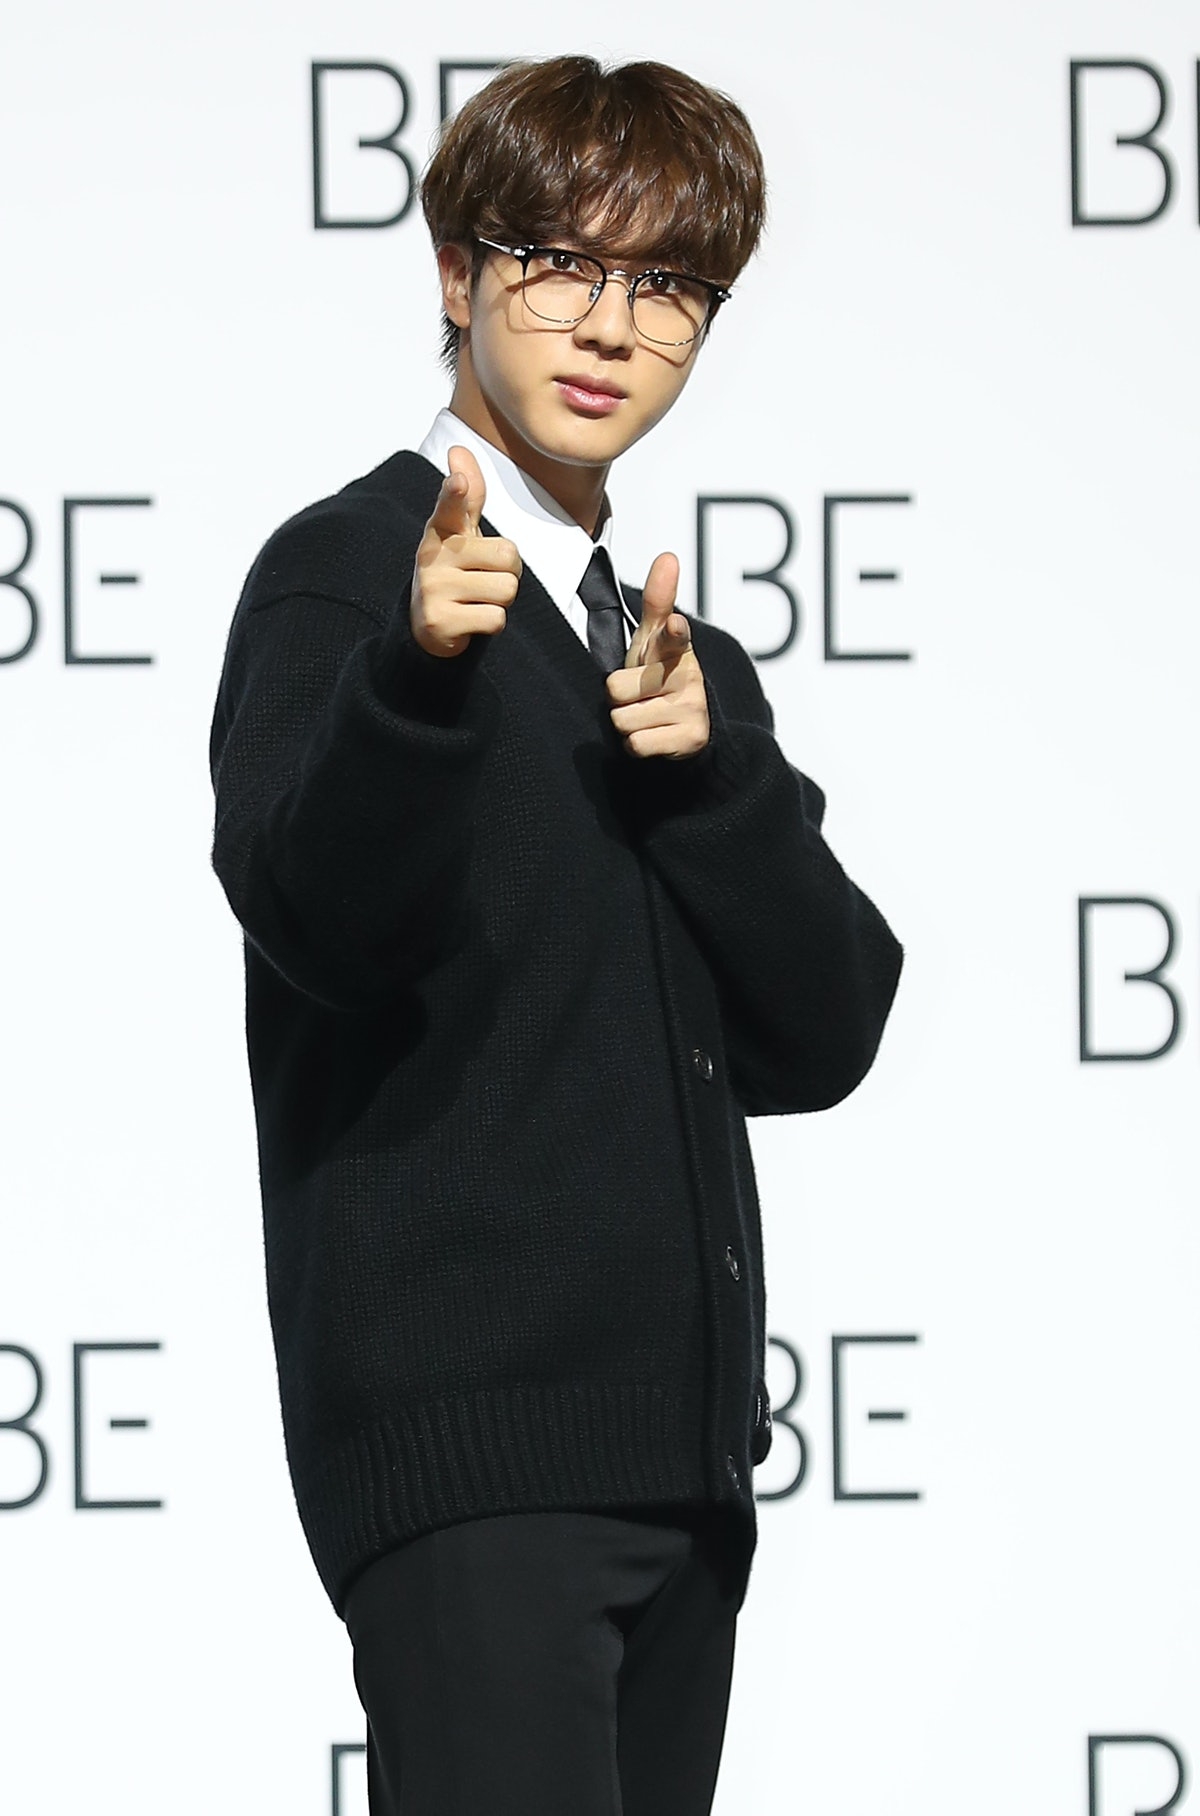 SEOUL, SOUTH KOREA - NOVEMBER 20: Jin of BTS during BTS's new album 'BE (Deluxe Edition)' release press conference at Dongdaemun Design Plaza on November 20, 2020 in Seoul, South Korea. (Photo by JTBC PLUS/Imazins via Getty Images)